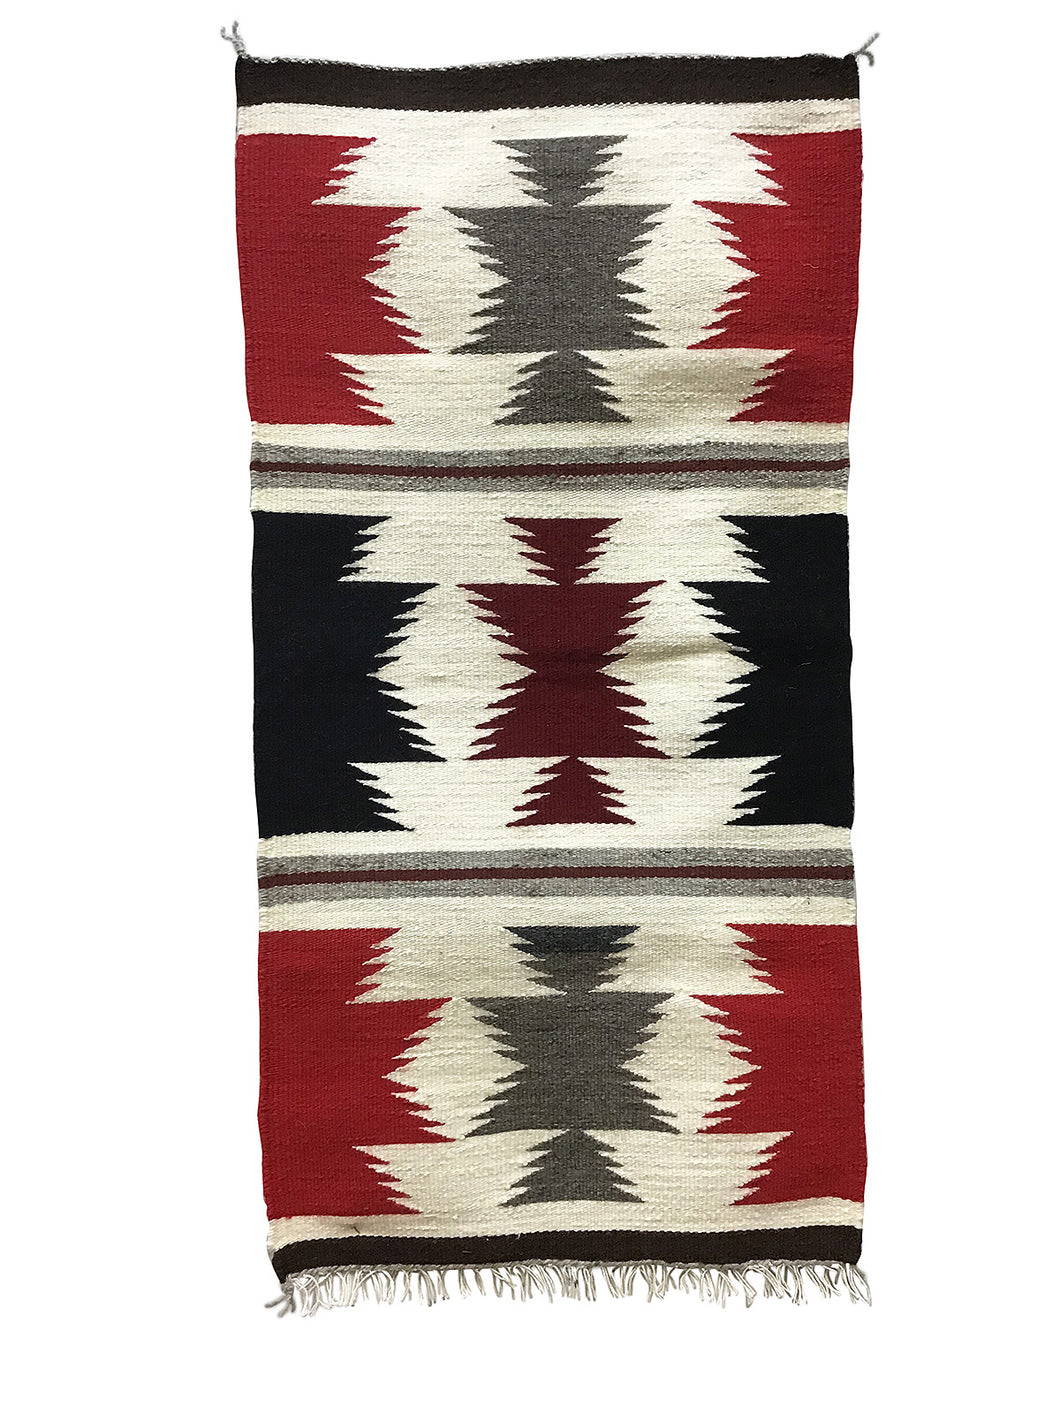 "Gallup Throw Rug, Navajo Handwoven, Wool, Cotton, 37 1/2"" x 19"""